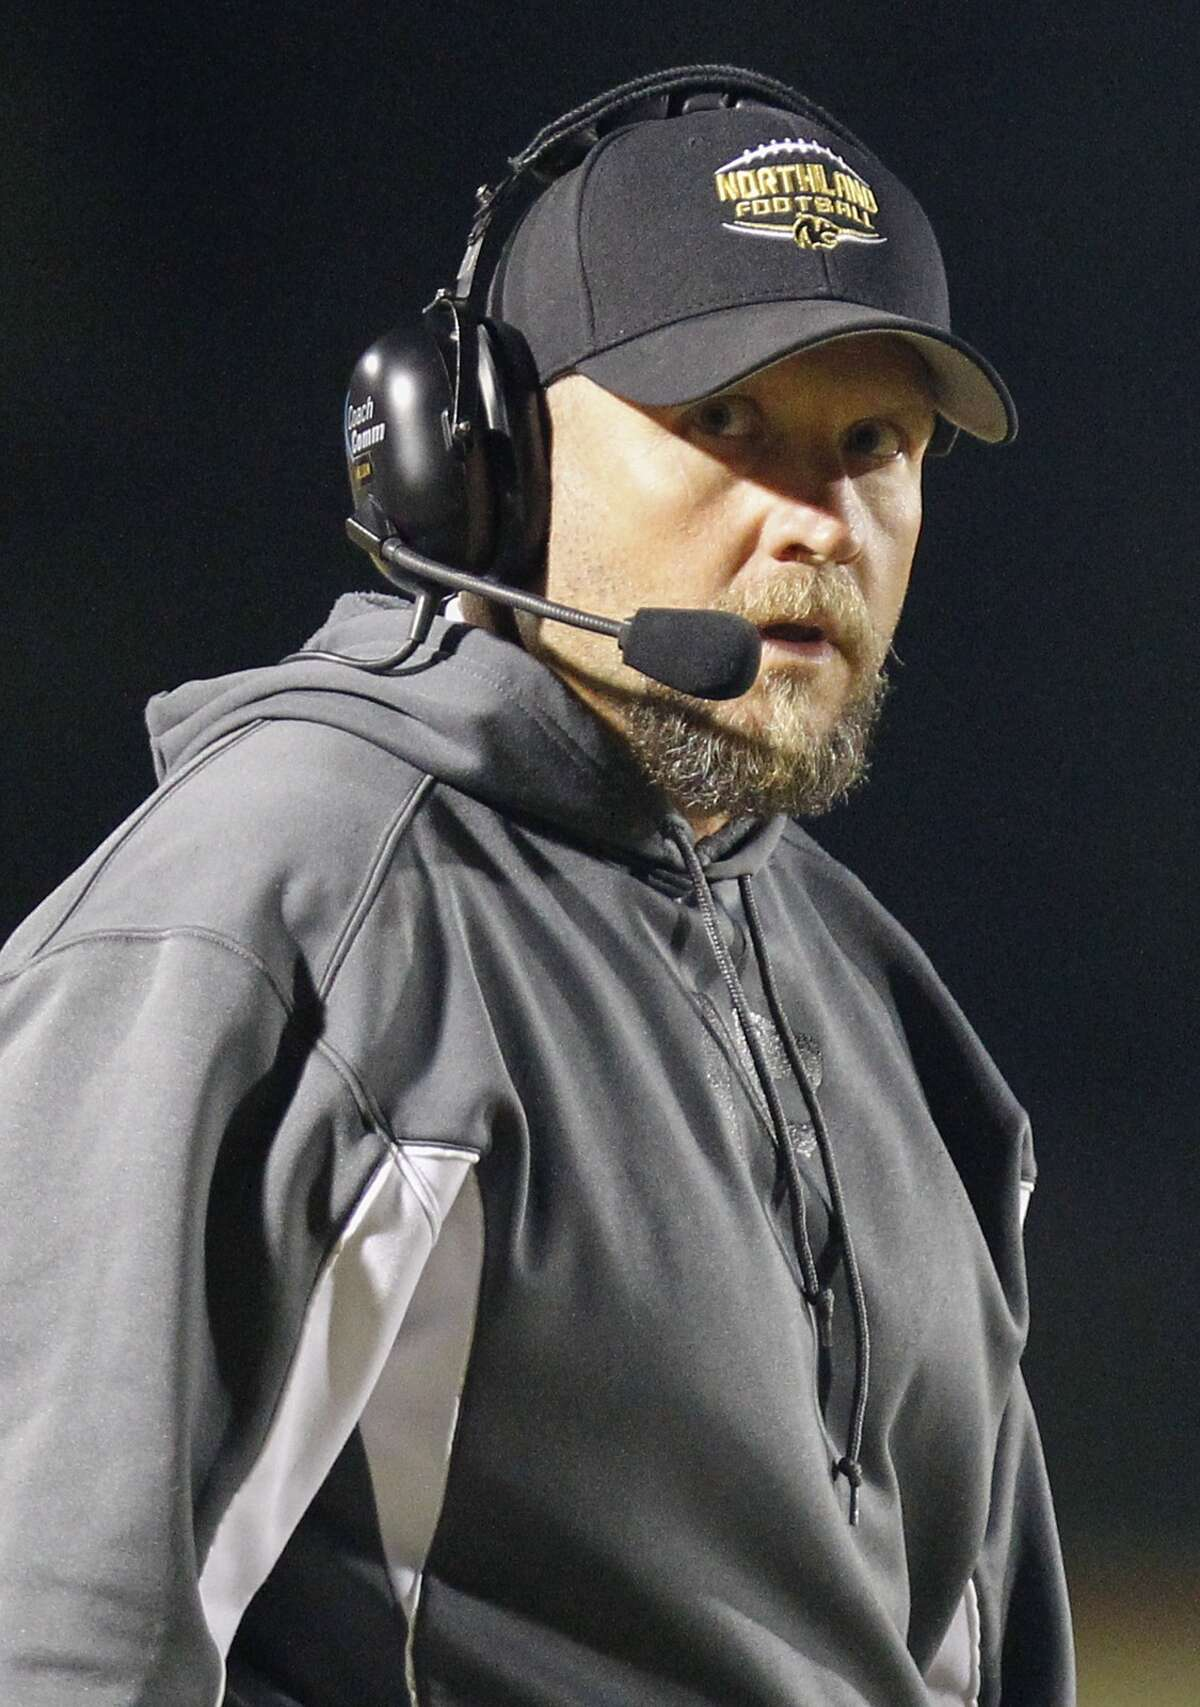 Former Northland Christian football coach David Nelson has been named to the same position at Houston Christian.